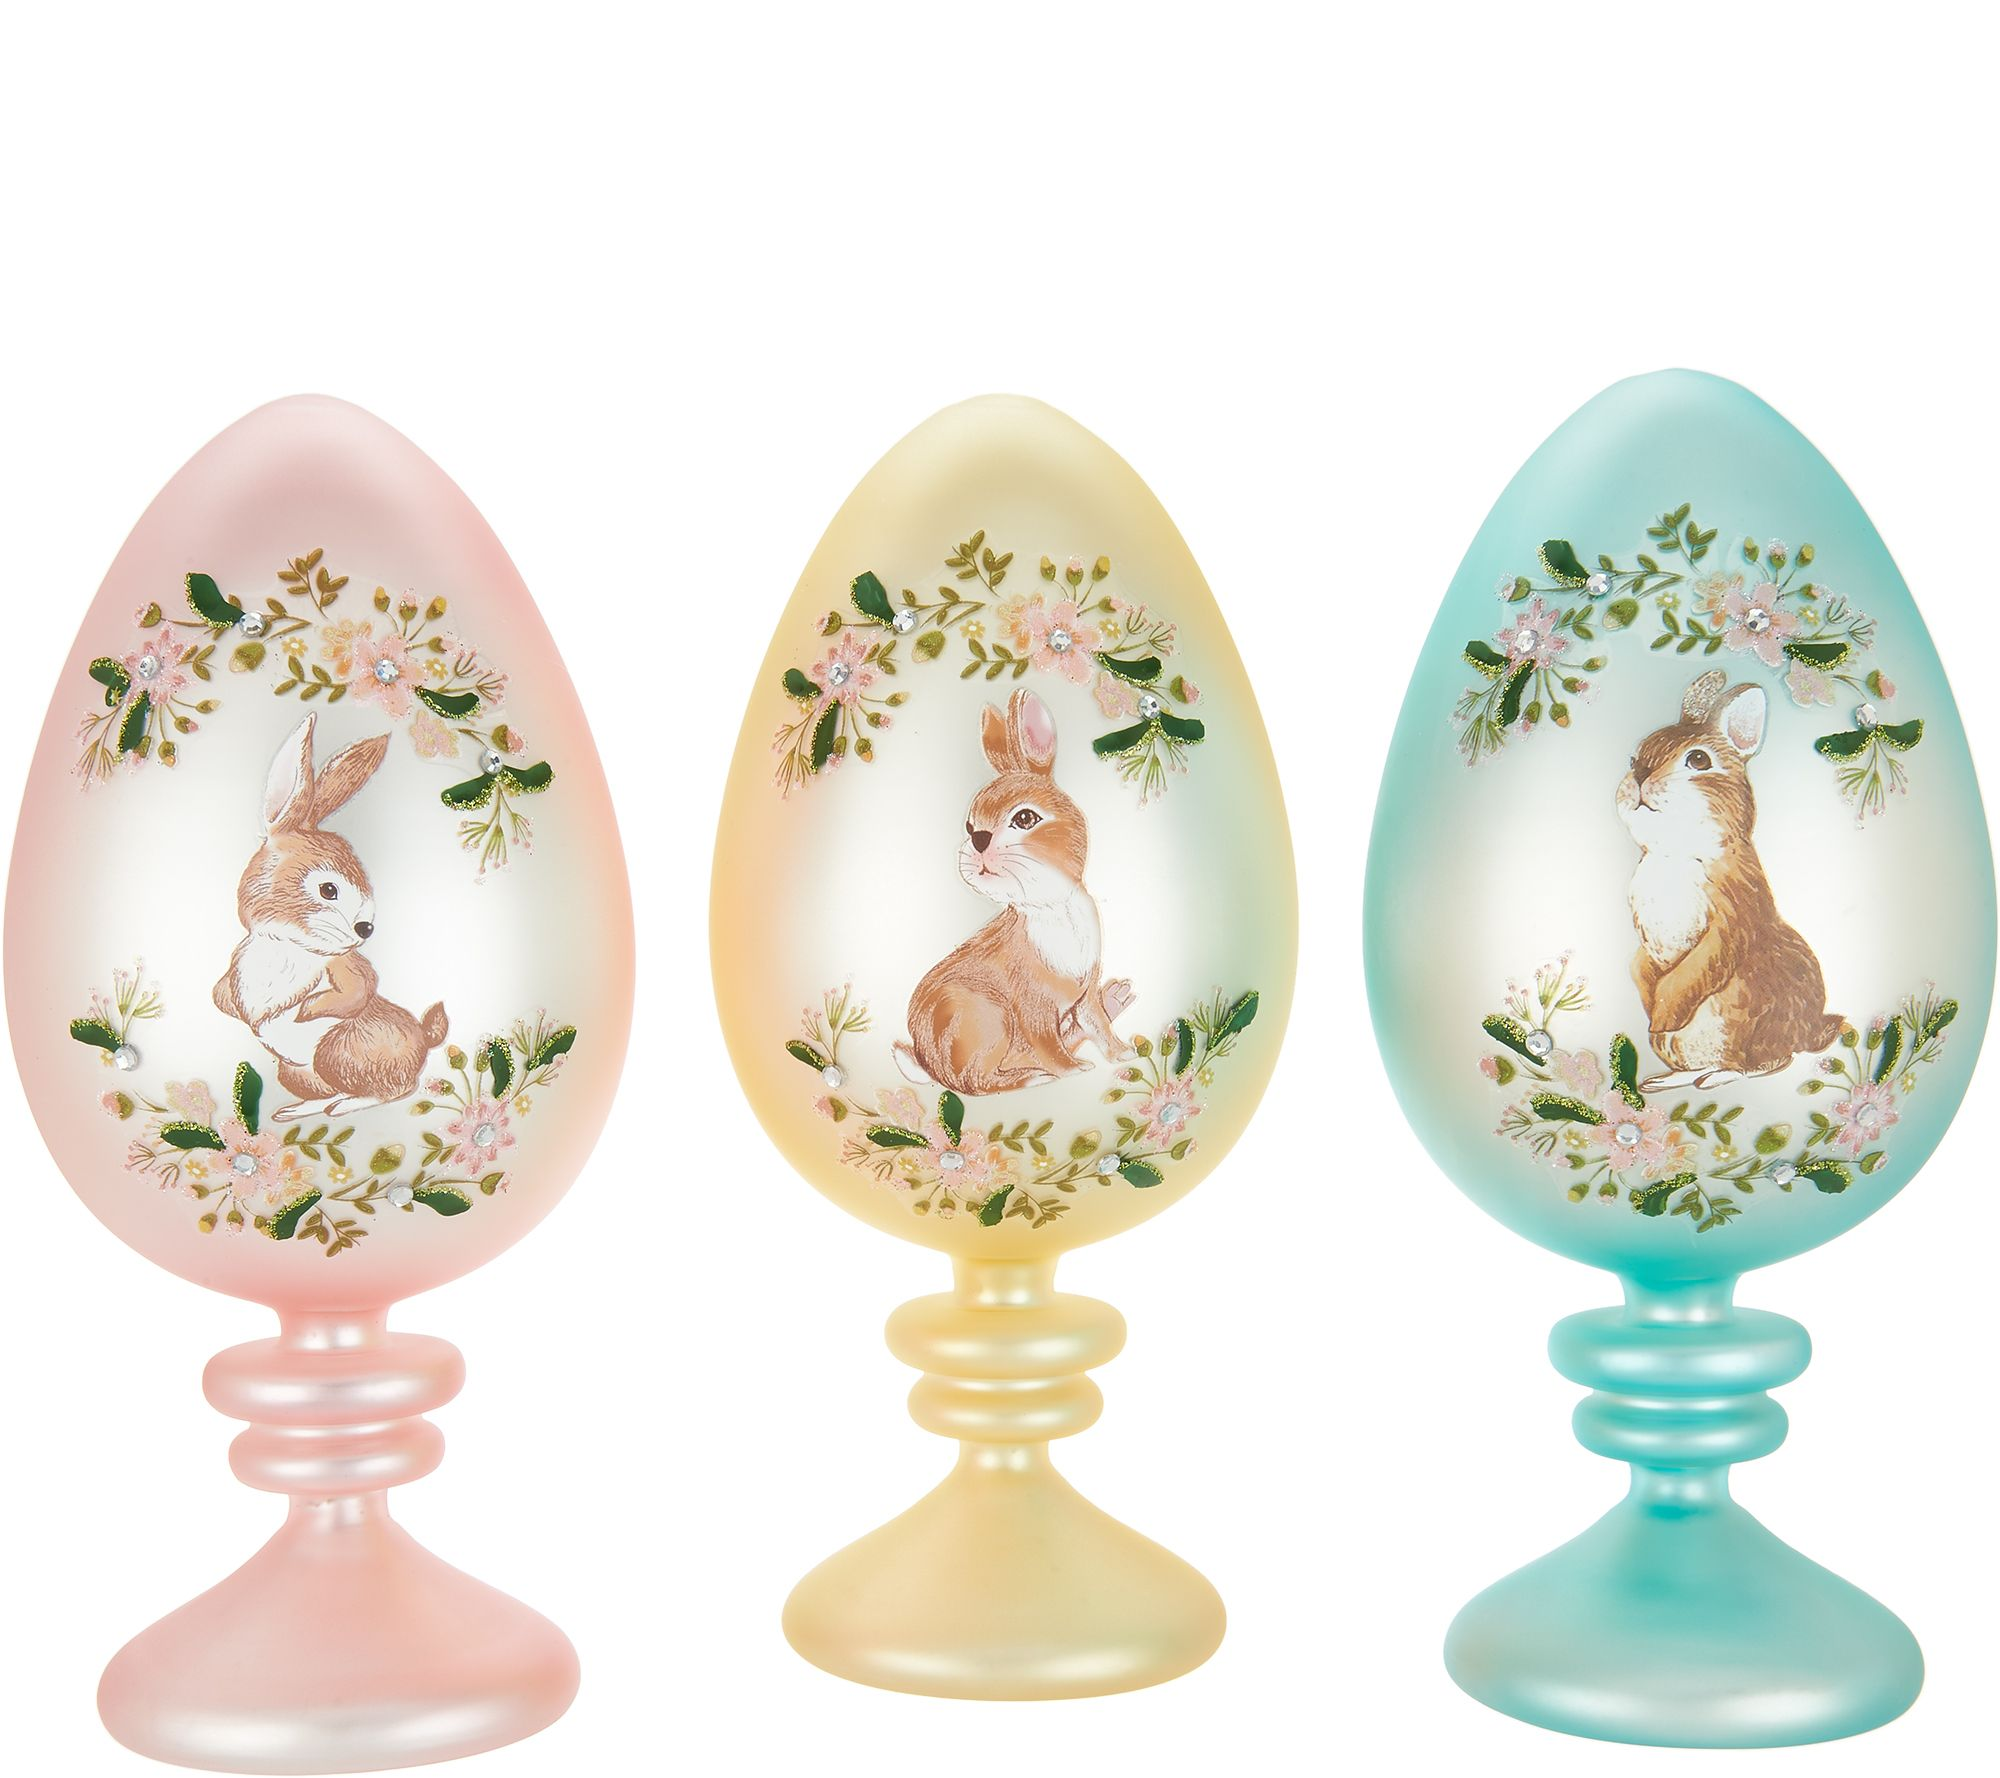 Set of 3 9 eggs on pedestals w decal design by valerie page set of 3 9 eggs on pedestals w decal design by valerie page 1 qvc negle Choice Image